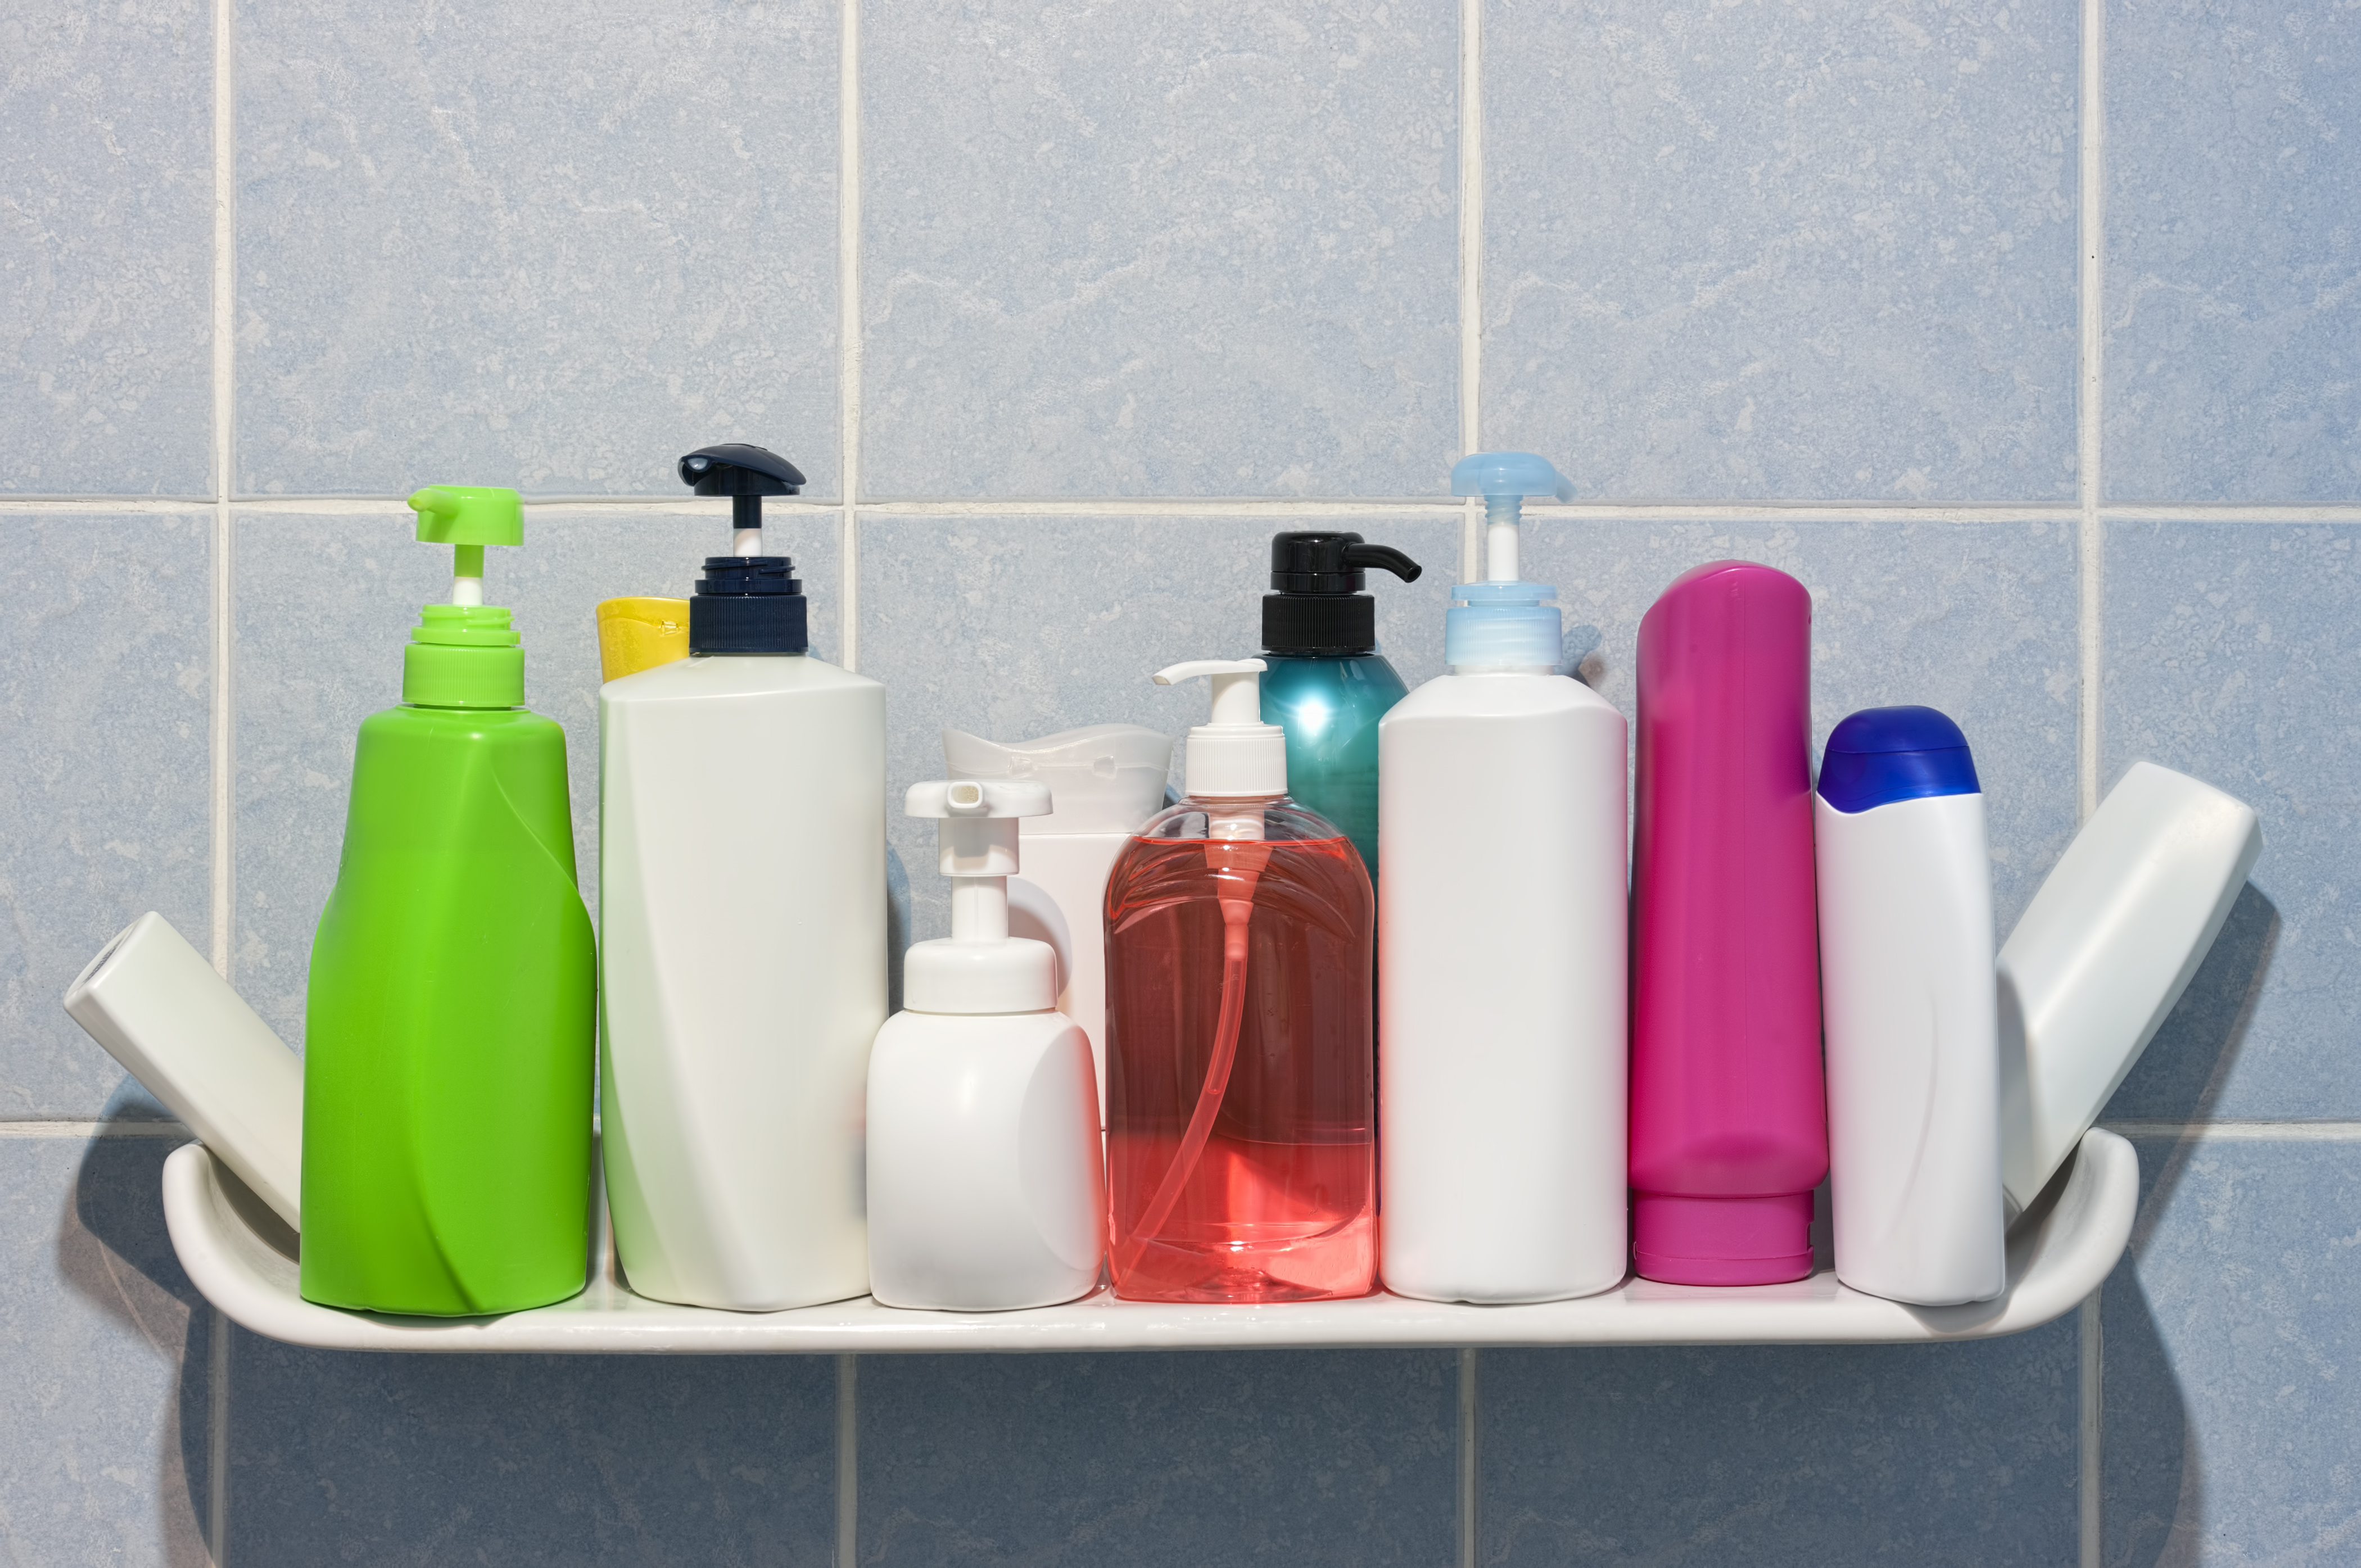 Single-use plastic bottles organized on a shelf in the shower